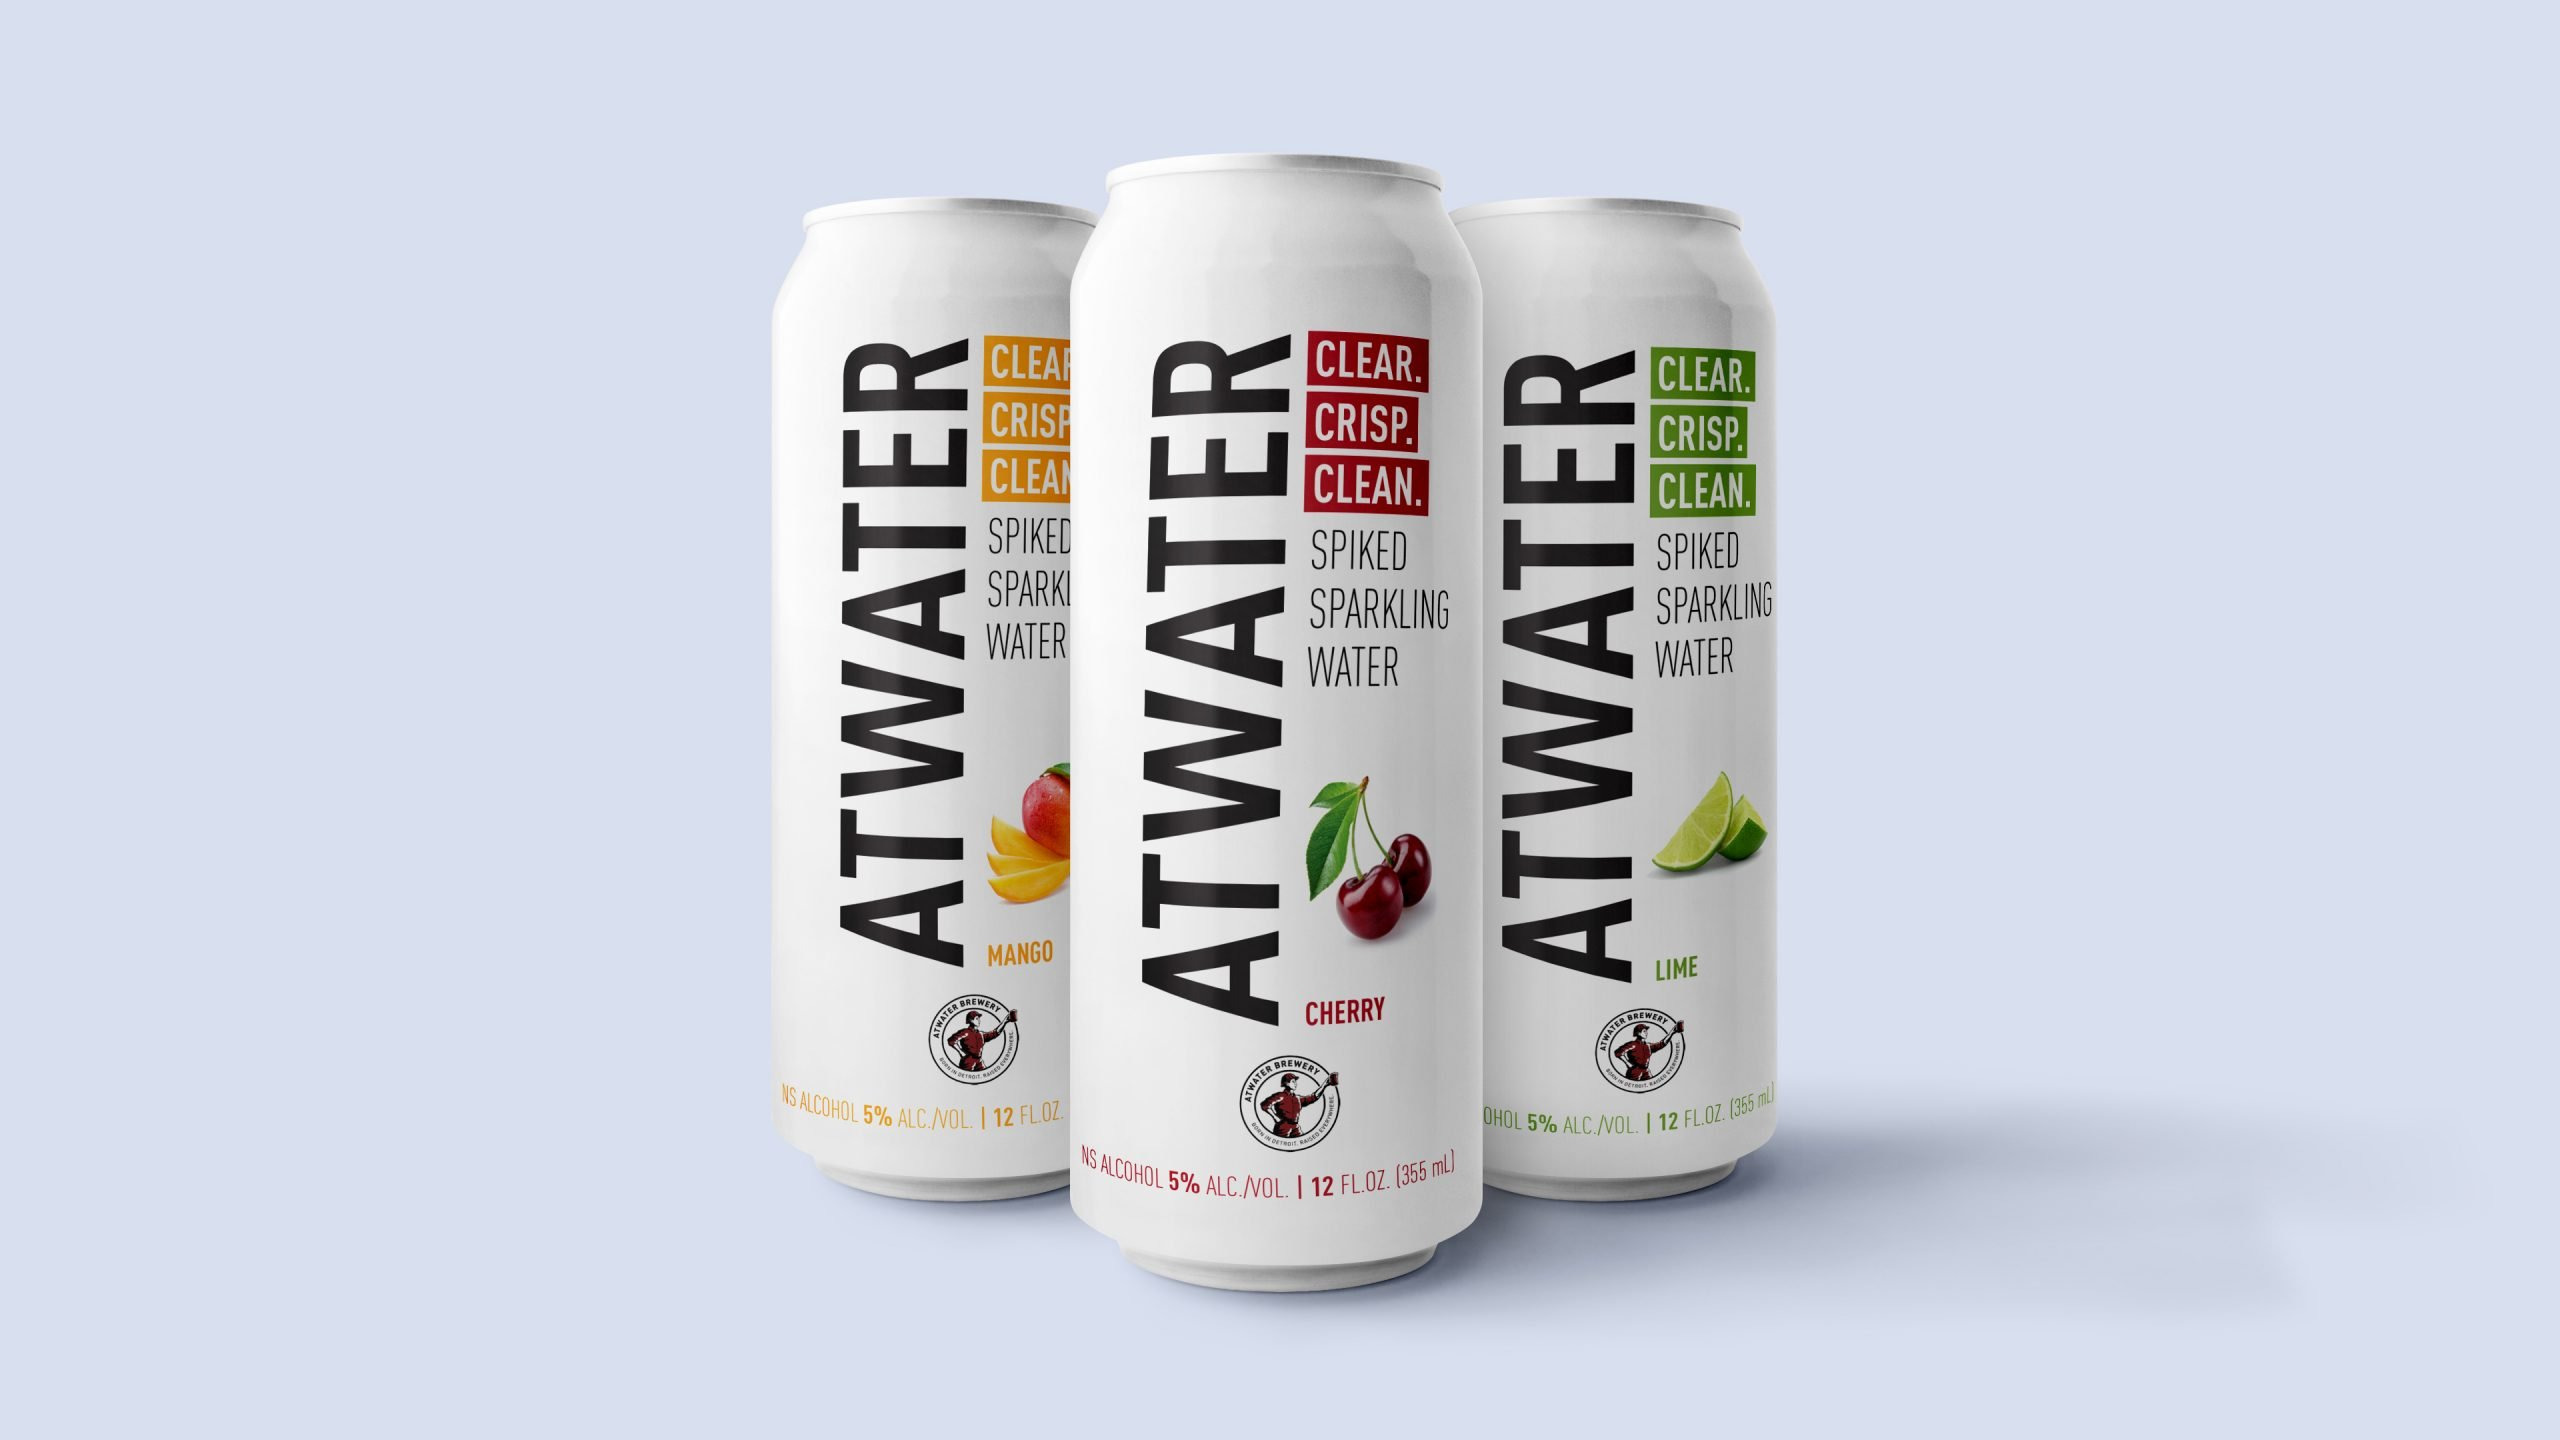 Detroit's Atwater Brewery is doubling down on its Hard Seltzer production after its initial production quantities sold out quickly and received high marks.